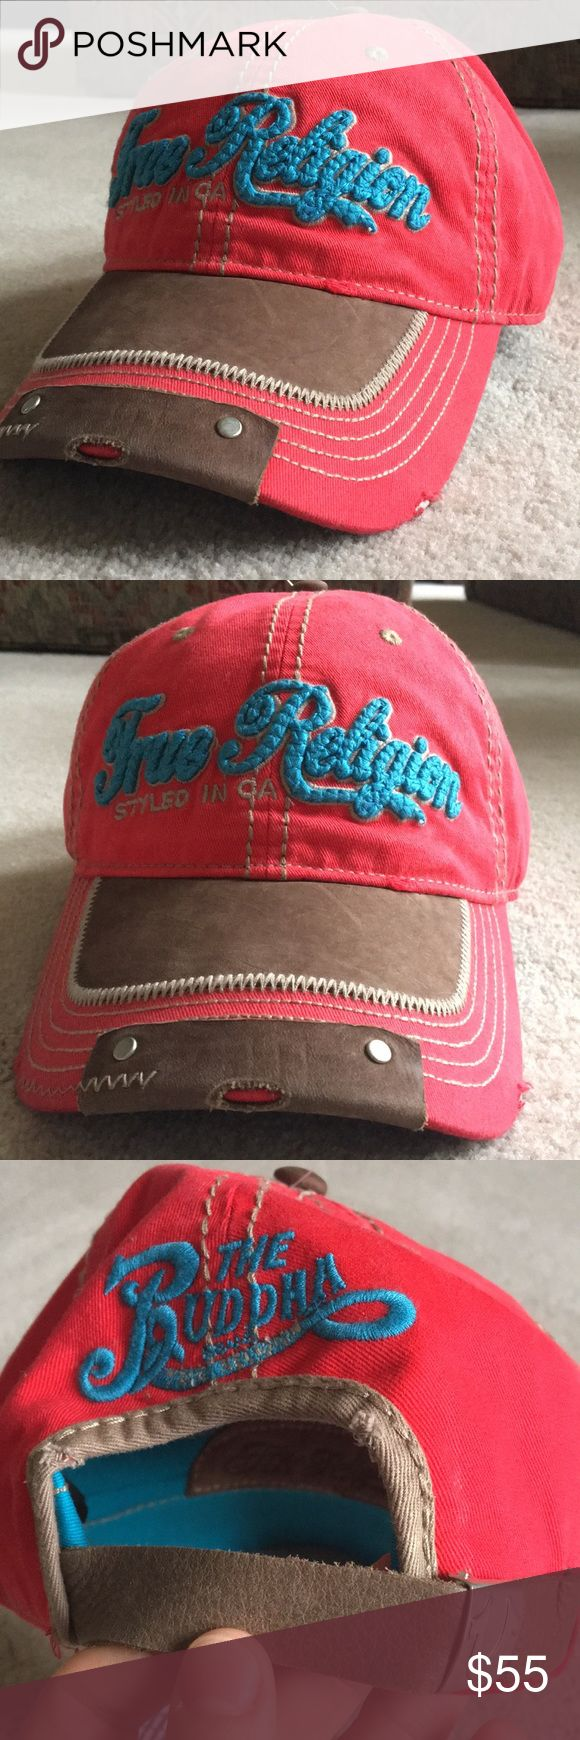 "NWT True Religion hat NWT True Religion ""styles in CA"" hat. Made in China. One size fits all. Adjustable fit. Style#TR1698. Color: True red. 100% cotton. Happy poshing☺️✌️ True Religion Accessories Hats"